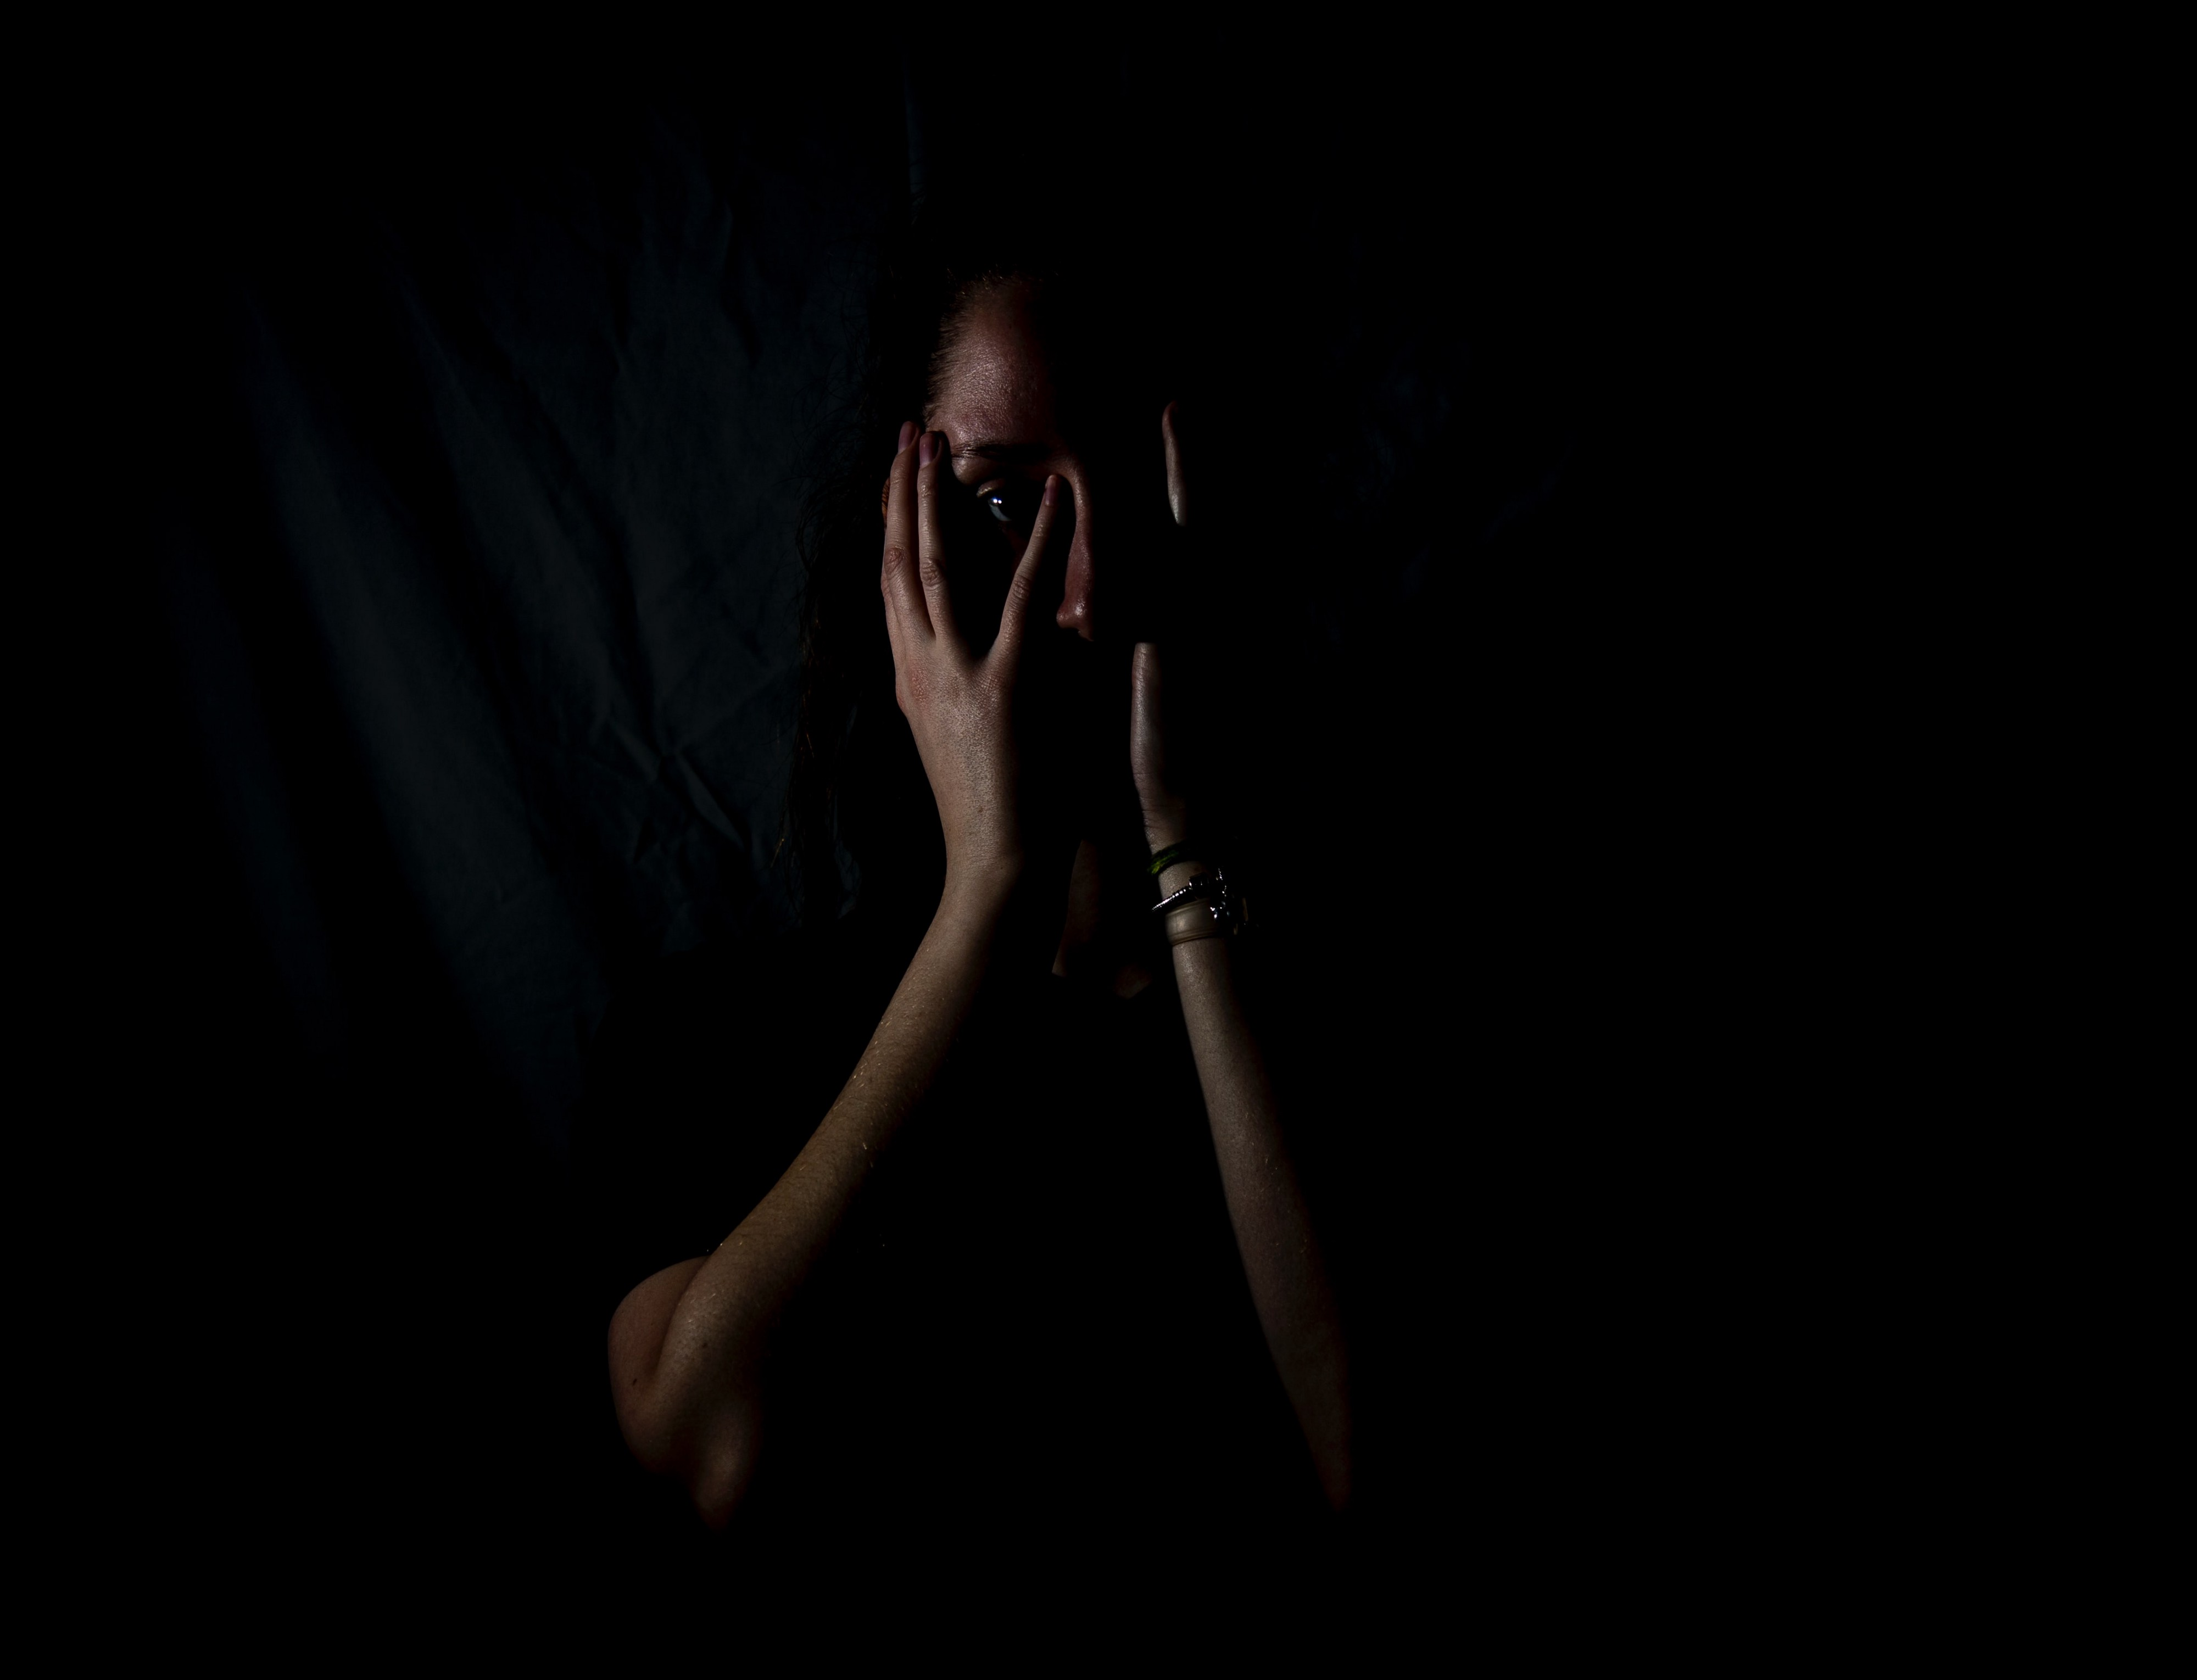 woman in darkness